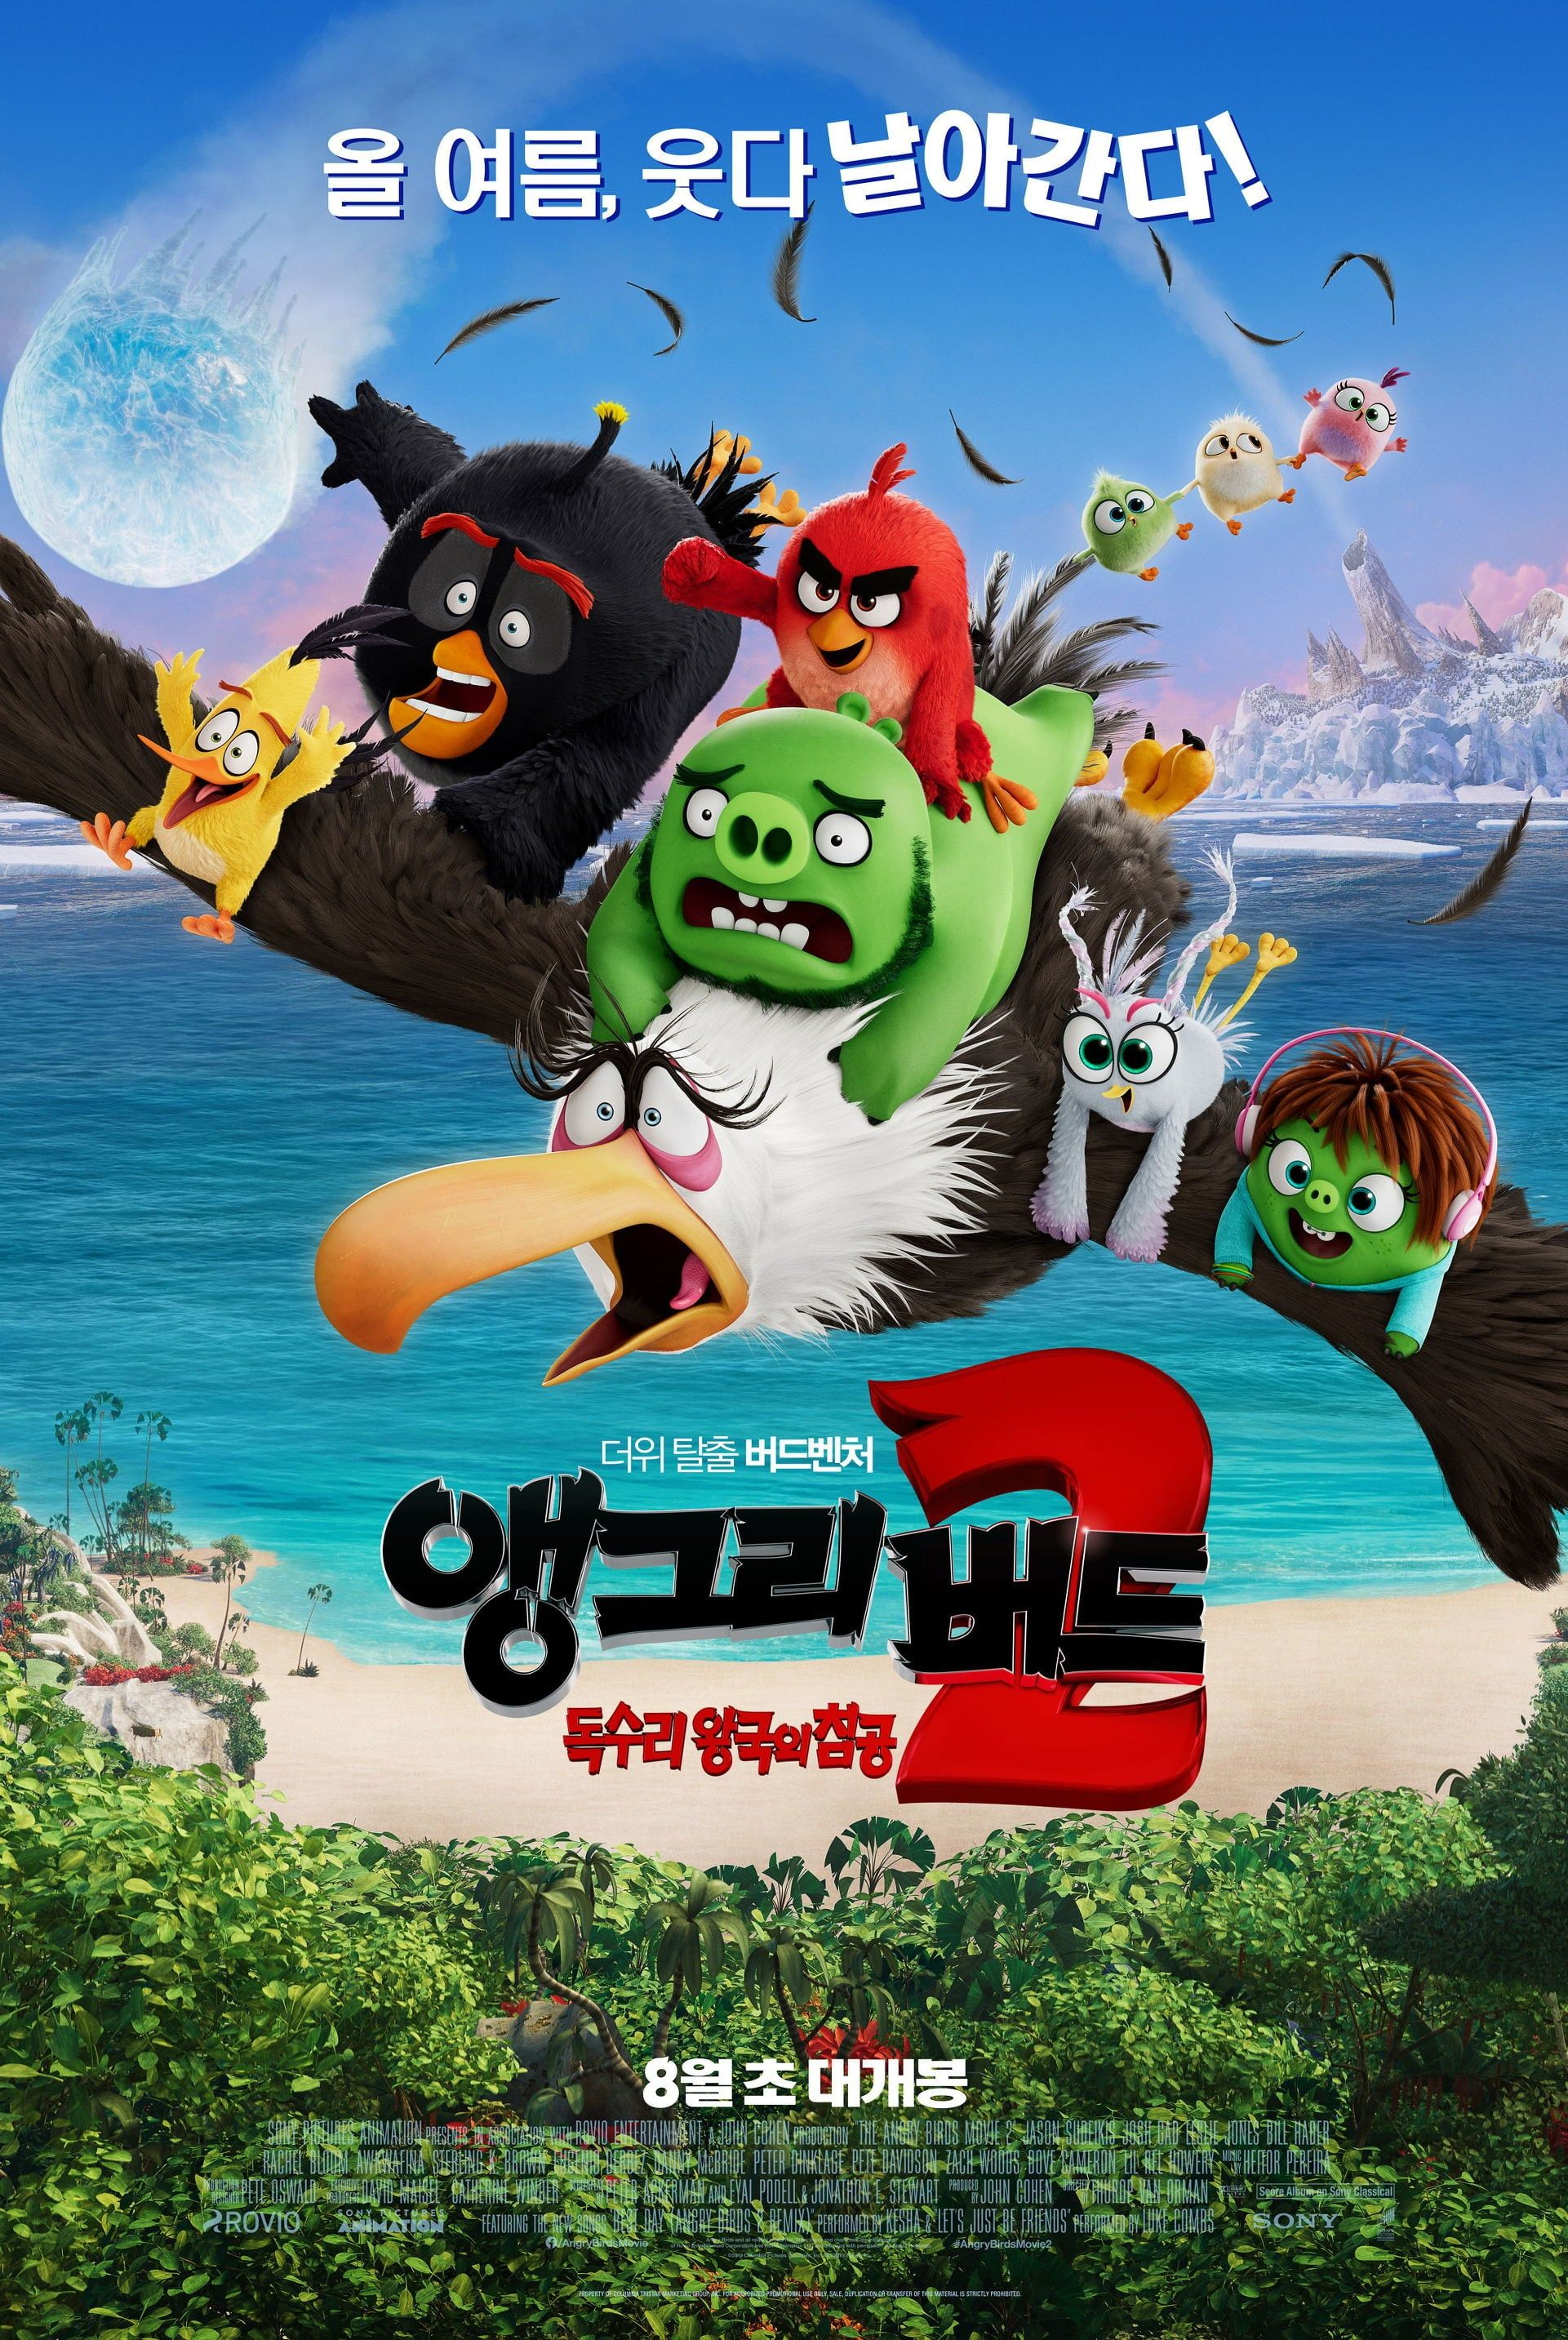 Pin On The Angry Birds Movie 2 Pelicula Completa Gratis En Español